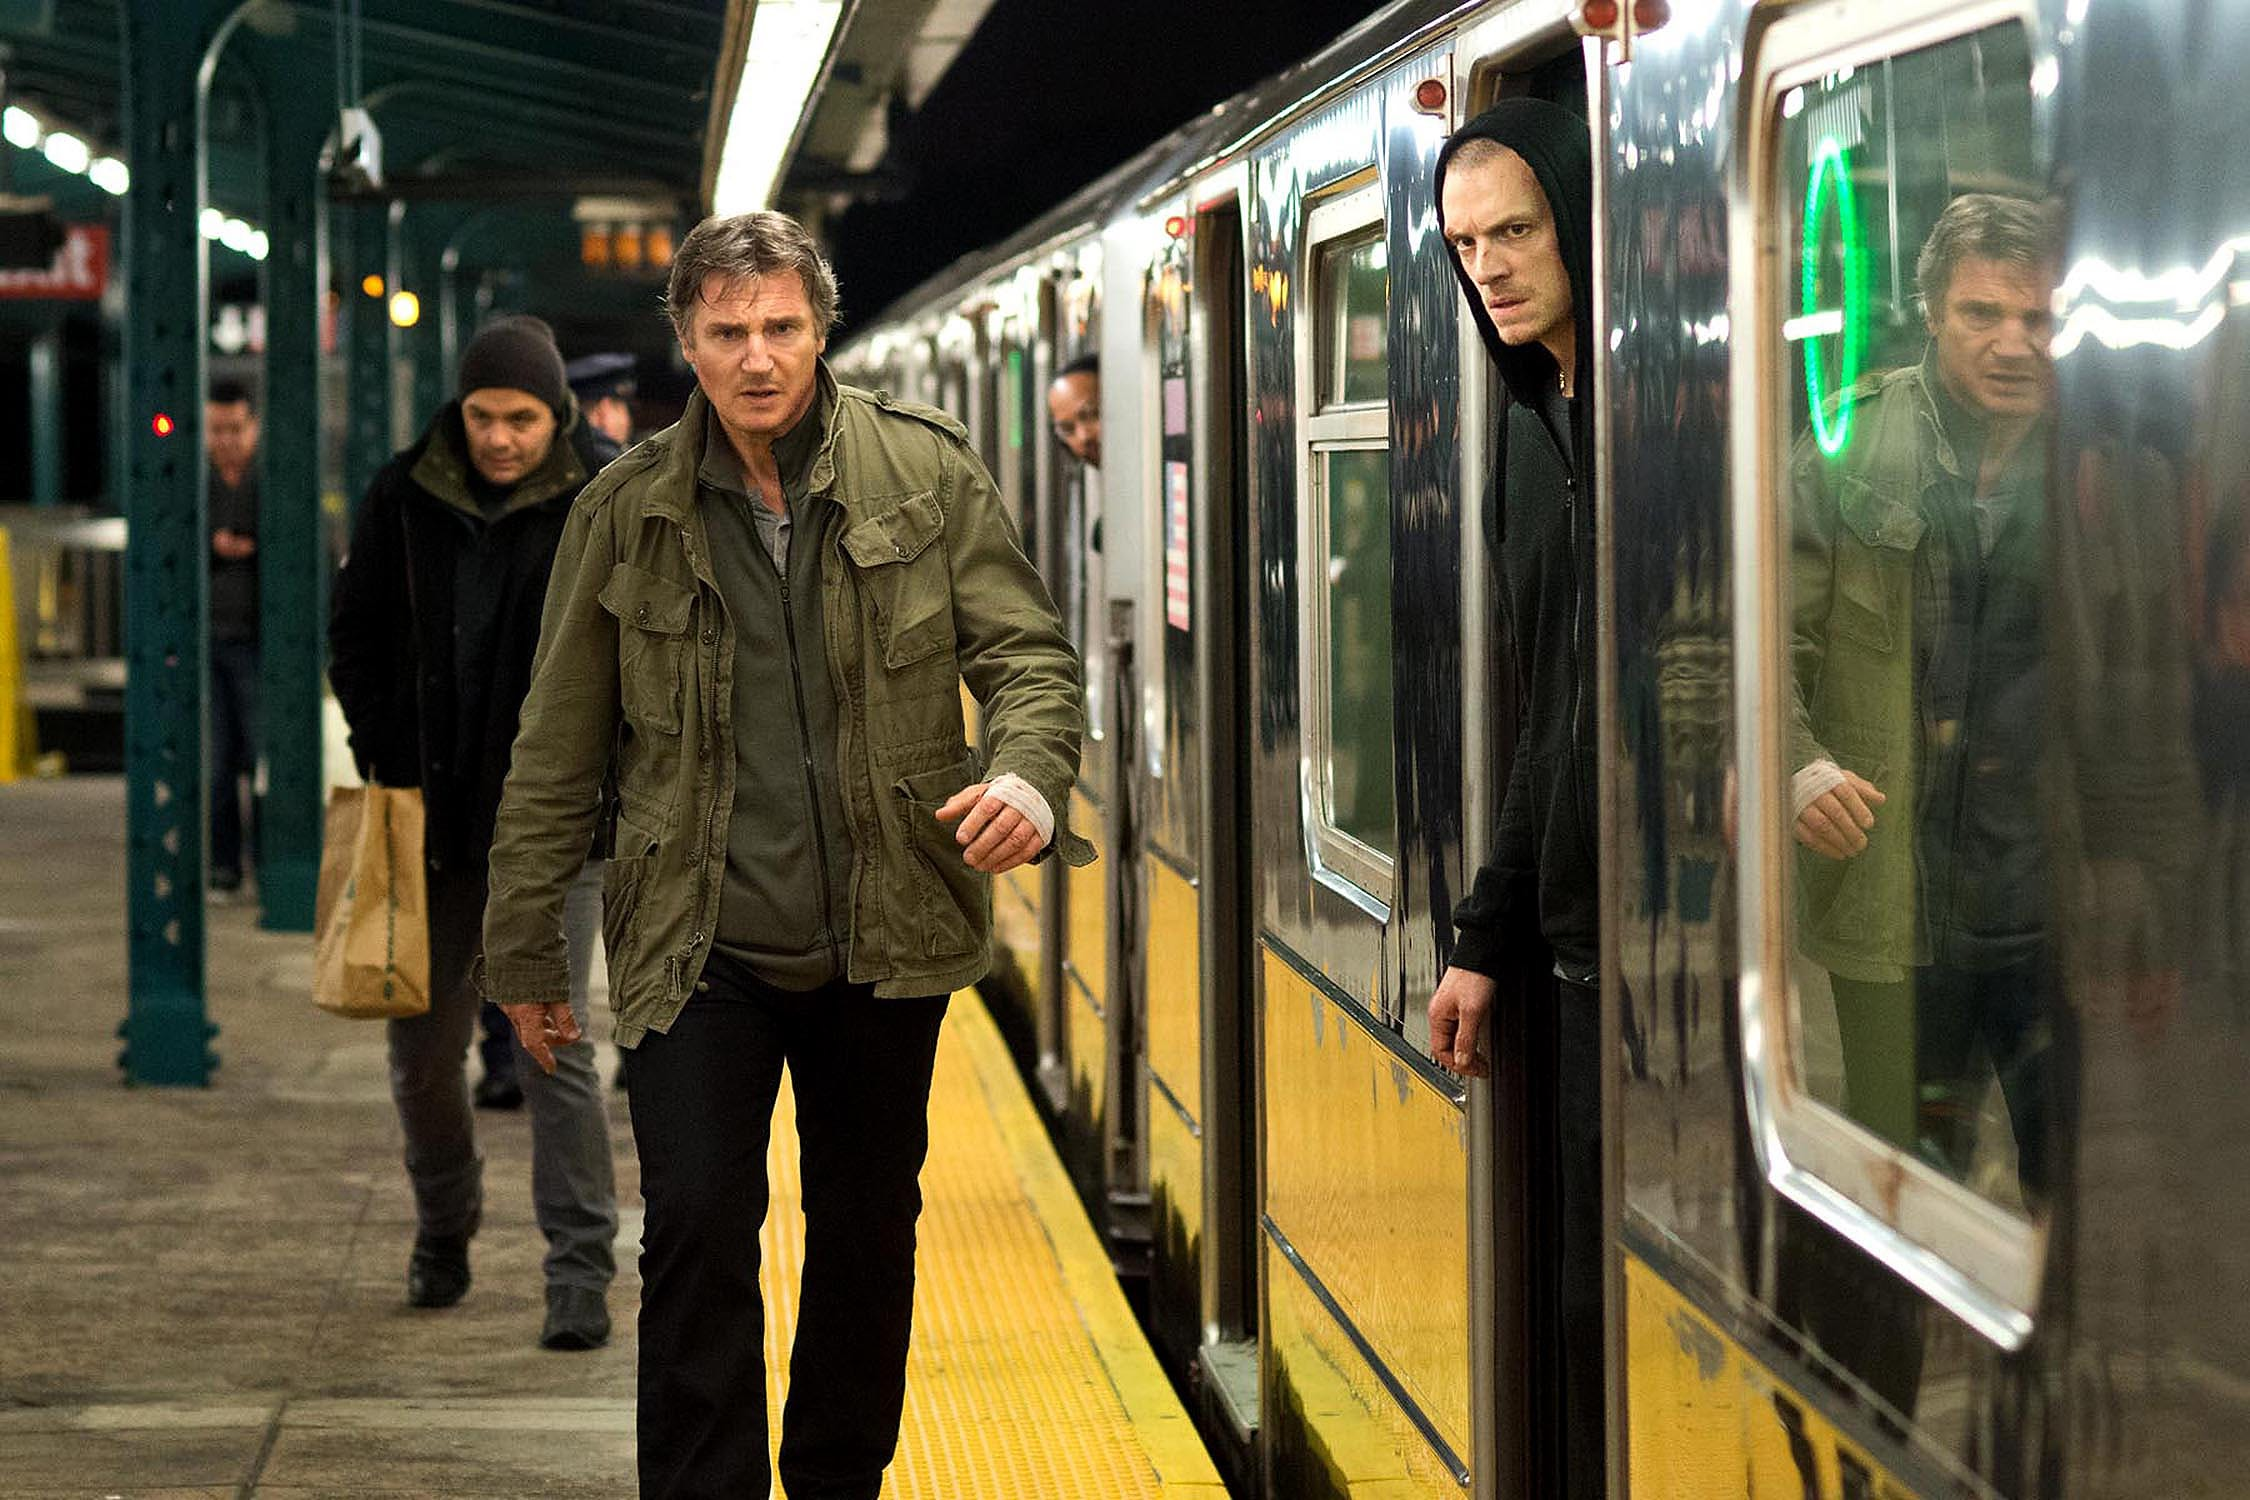 Sneak peek: Neeson dishes a world of hurt in